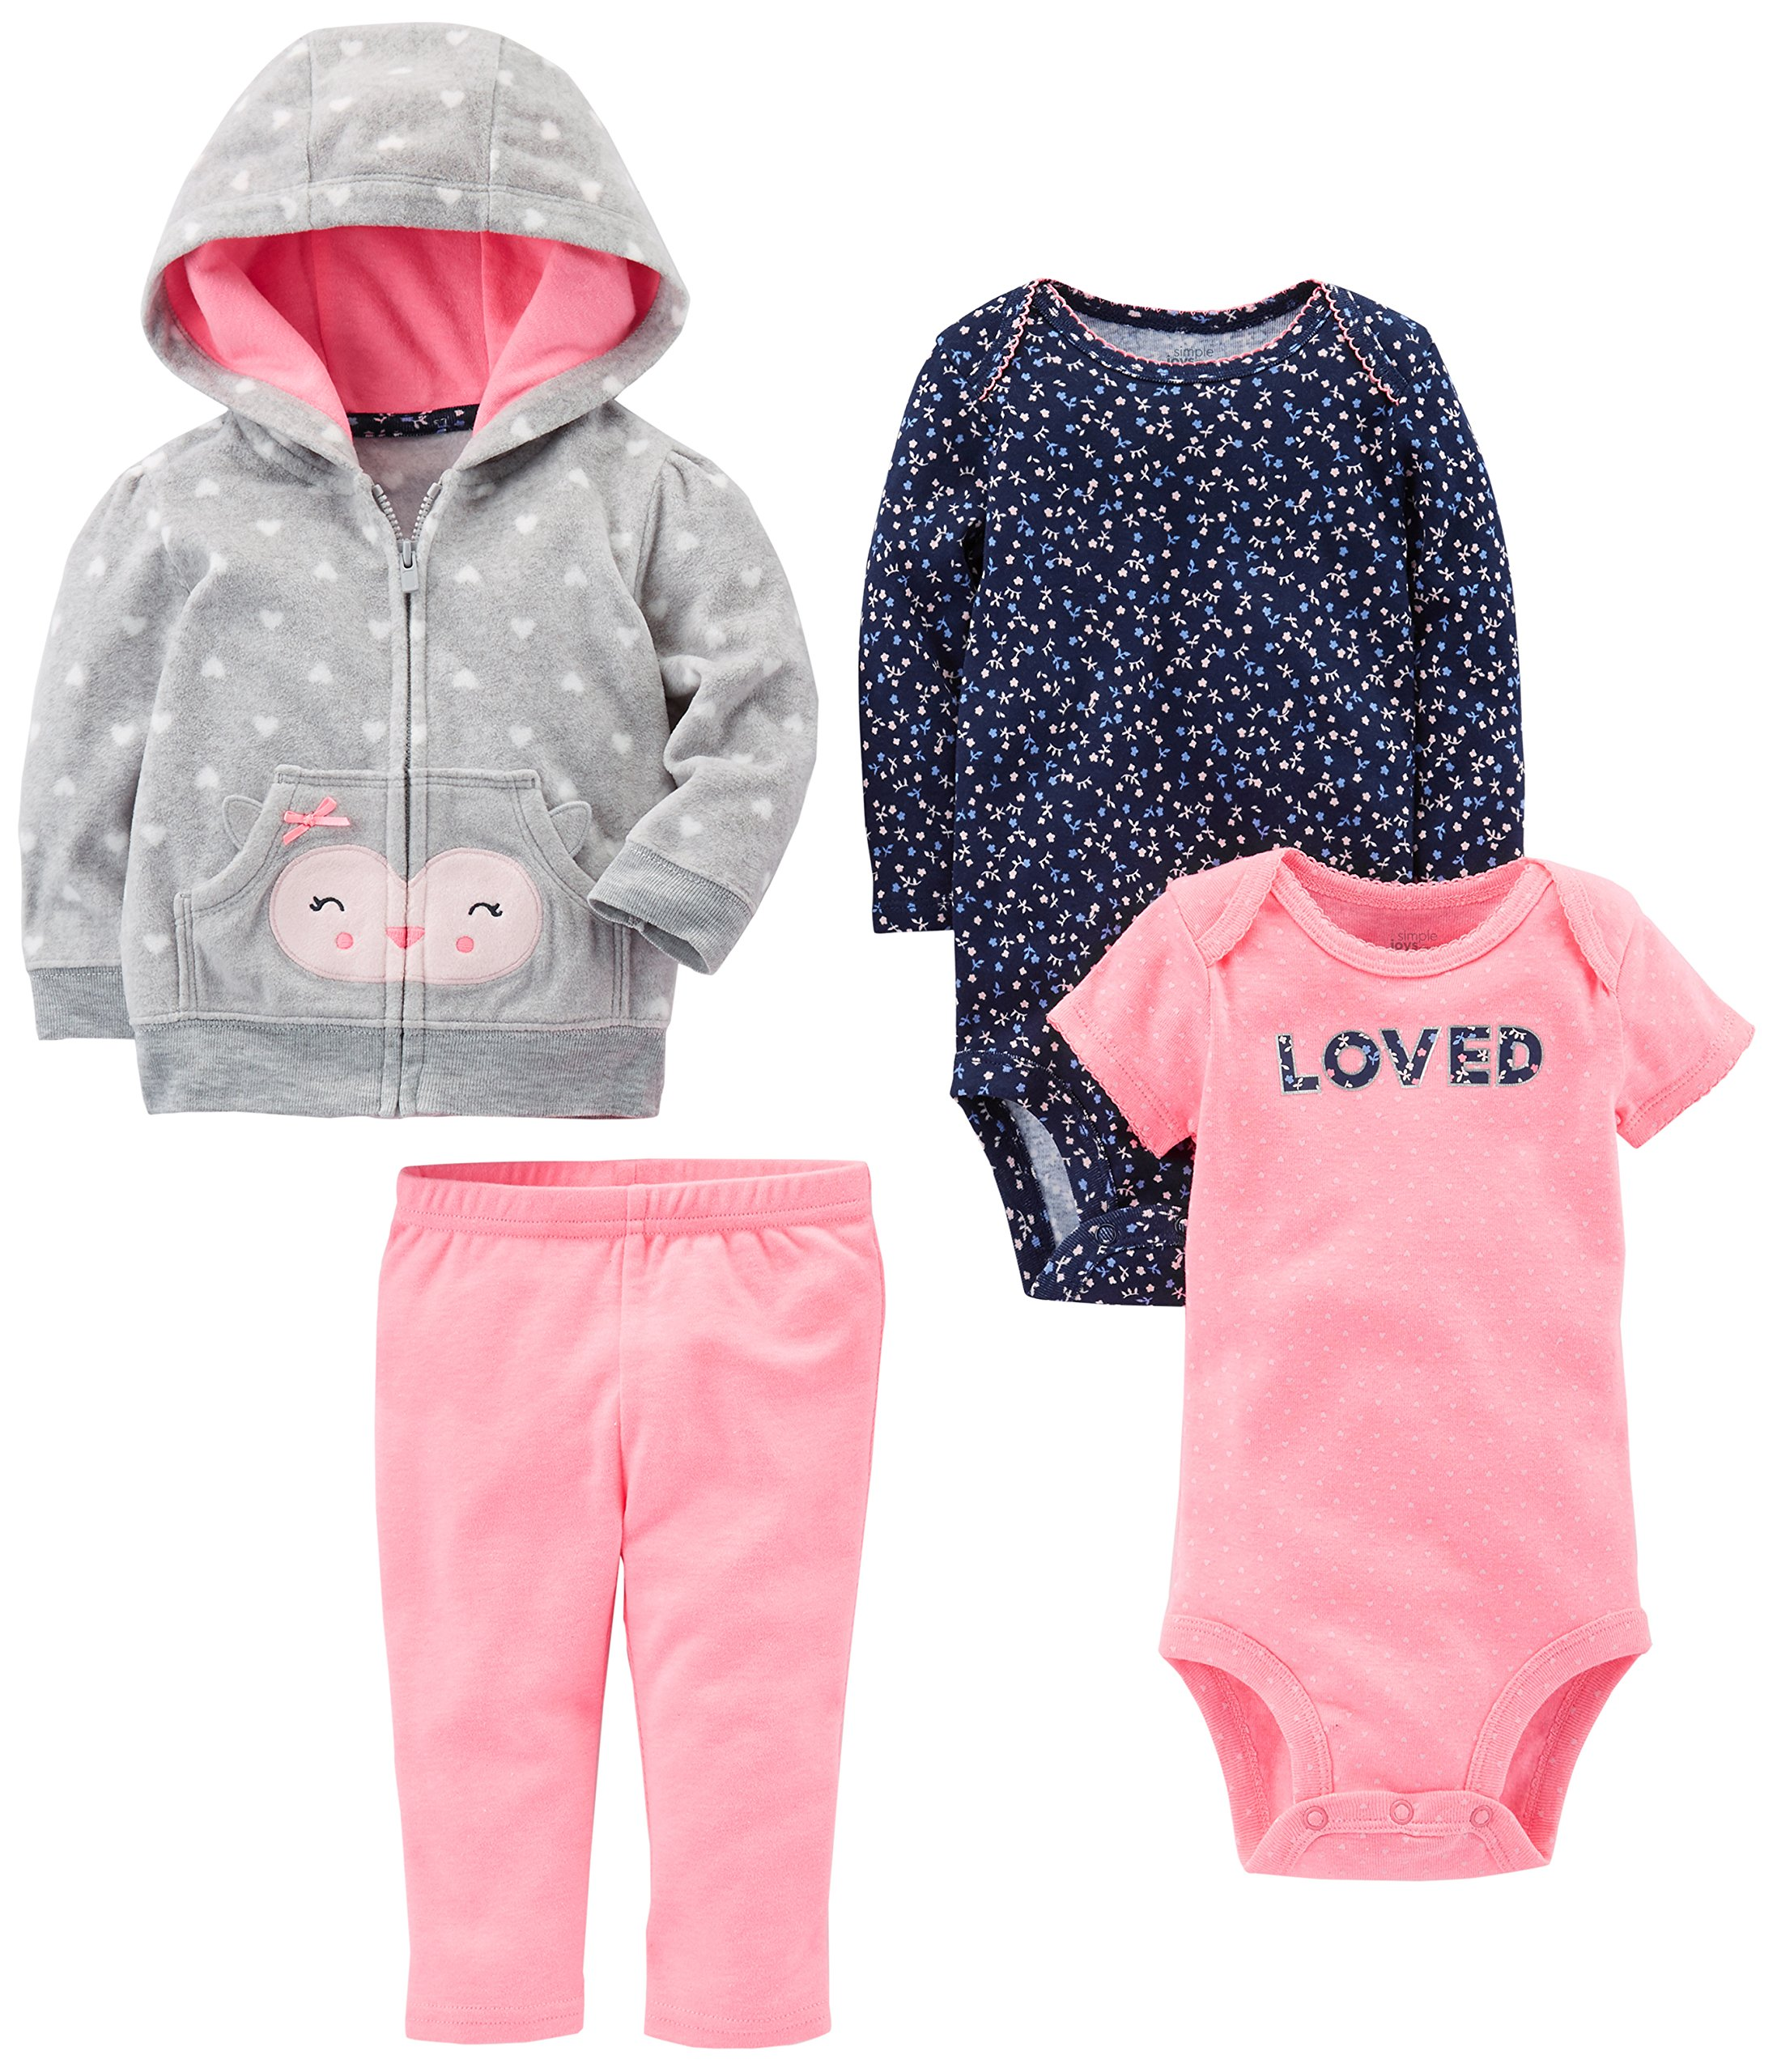 e46ec64c87f3 Best Rated in Baby Girls  Clothing Sets   Helpful Customer Reviews ...